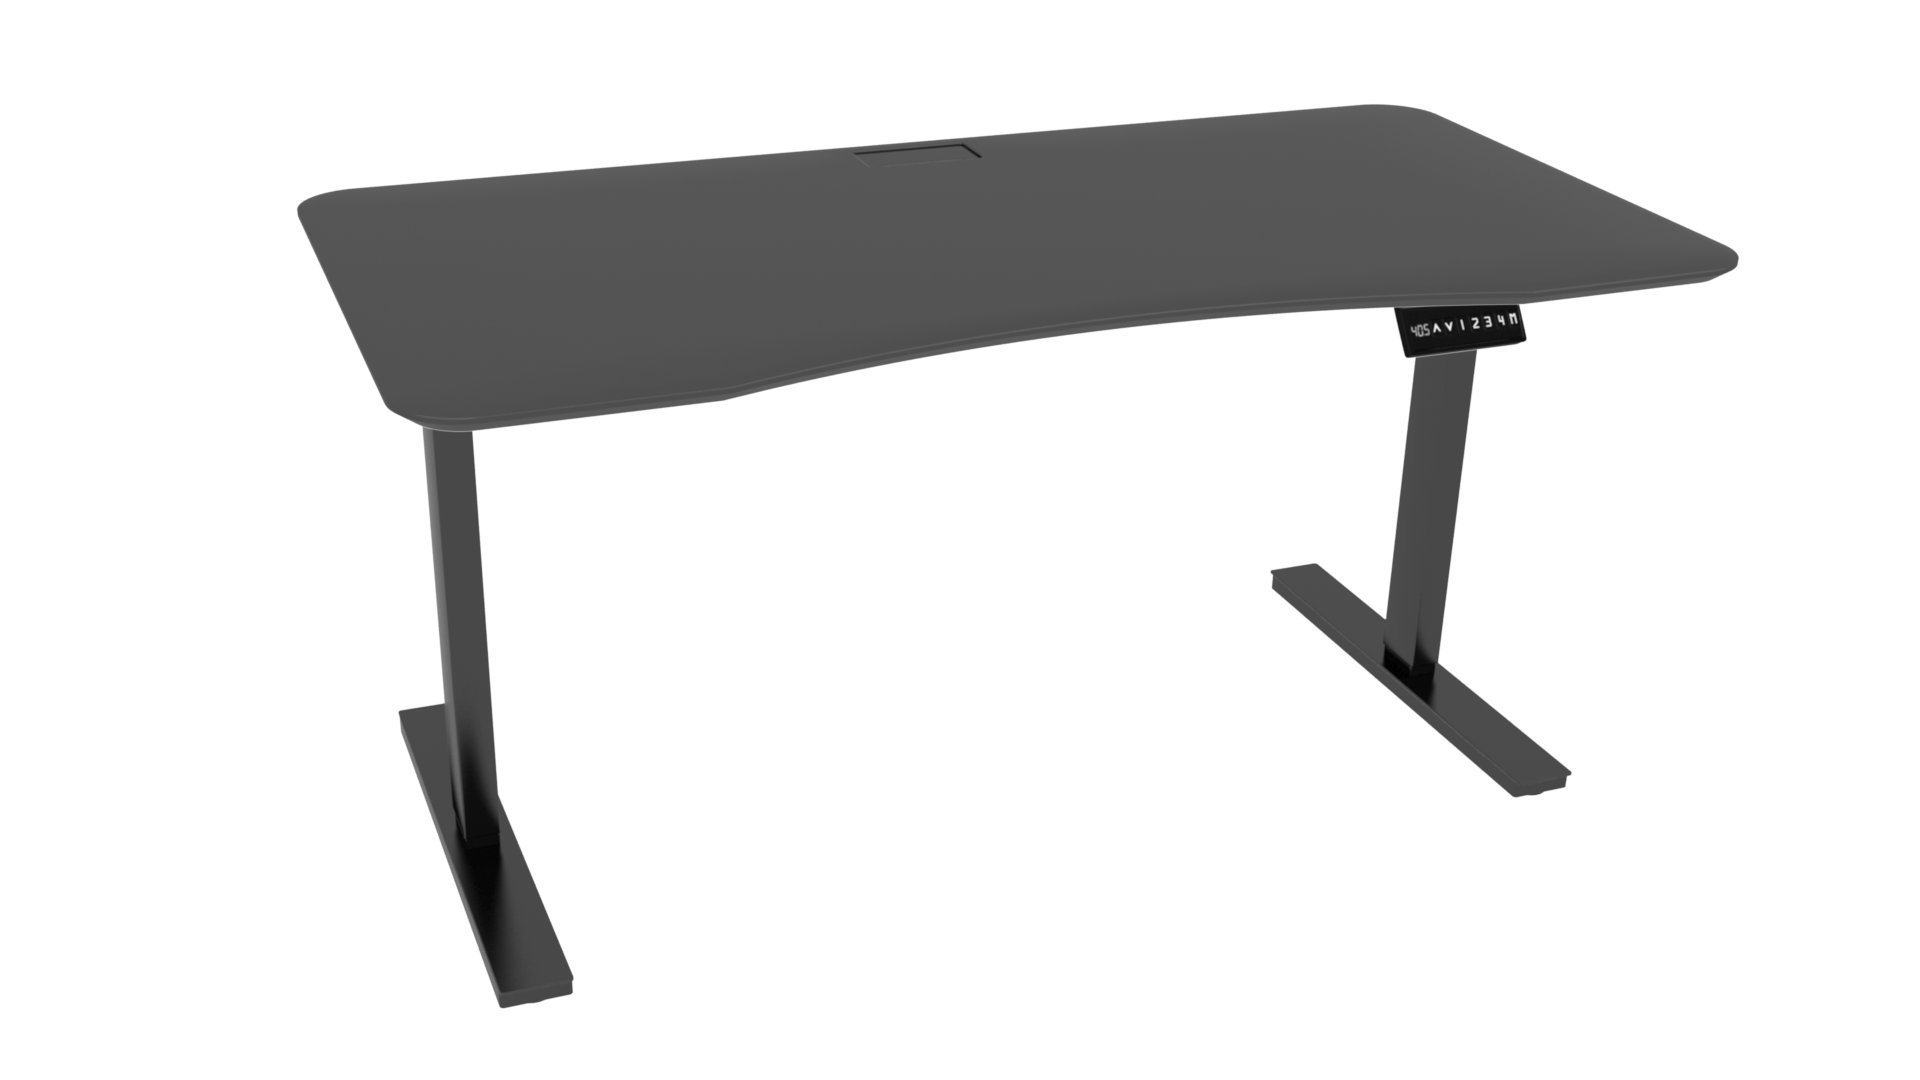 Ergo Elements Height Adjustable Electric Standing Desk with 60'' Top 4 Memory Buttons LED Display, Black with Black Top